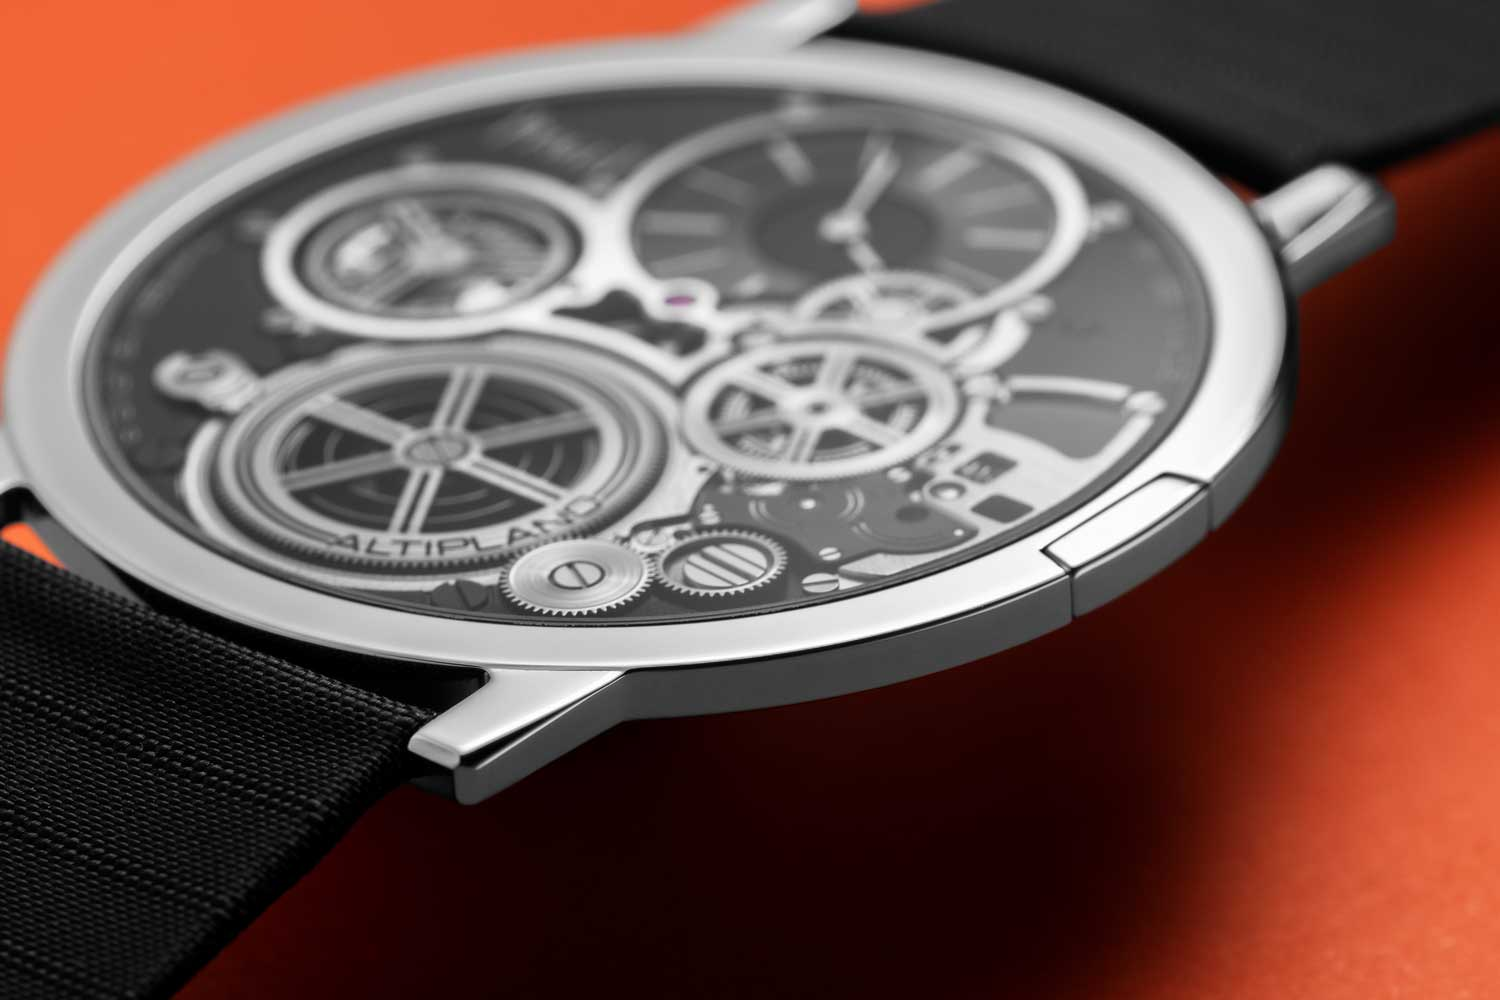 The 2mm thick Piaget Altiplano Ultimate Concept's sapphire crystal is 0.2mm in thickness which is 5 times thinner than a normal sapphire crystal and fitted directly to the case with aerospace glue as there is no bezel for the watch (©Revolution)